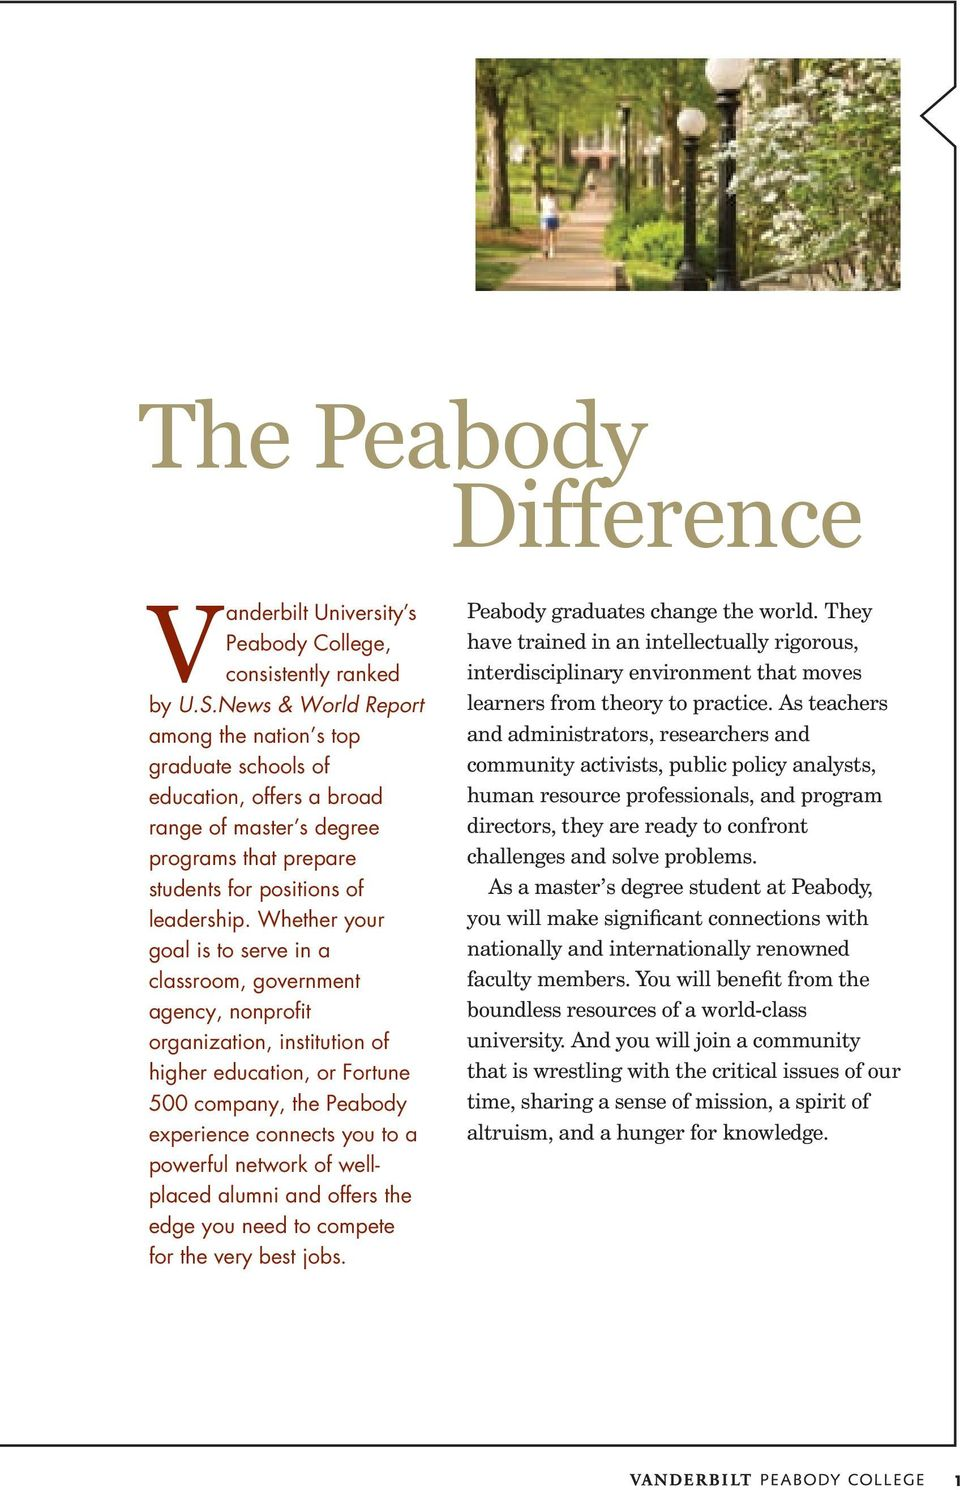 Whether your goal is to serve in a classroom, government agency, nonprofit organization, institution of higher education, or Fortune 500 company, the Peabody experience connects you to a powerful